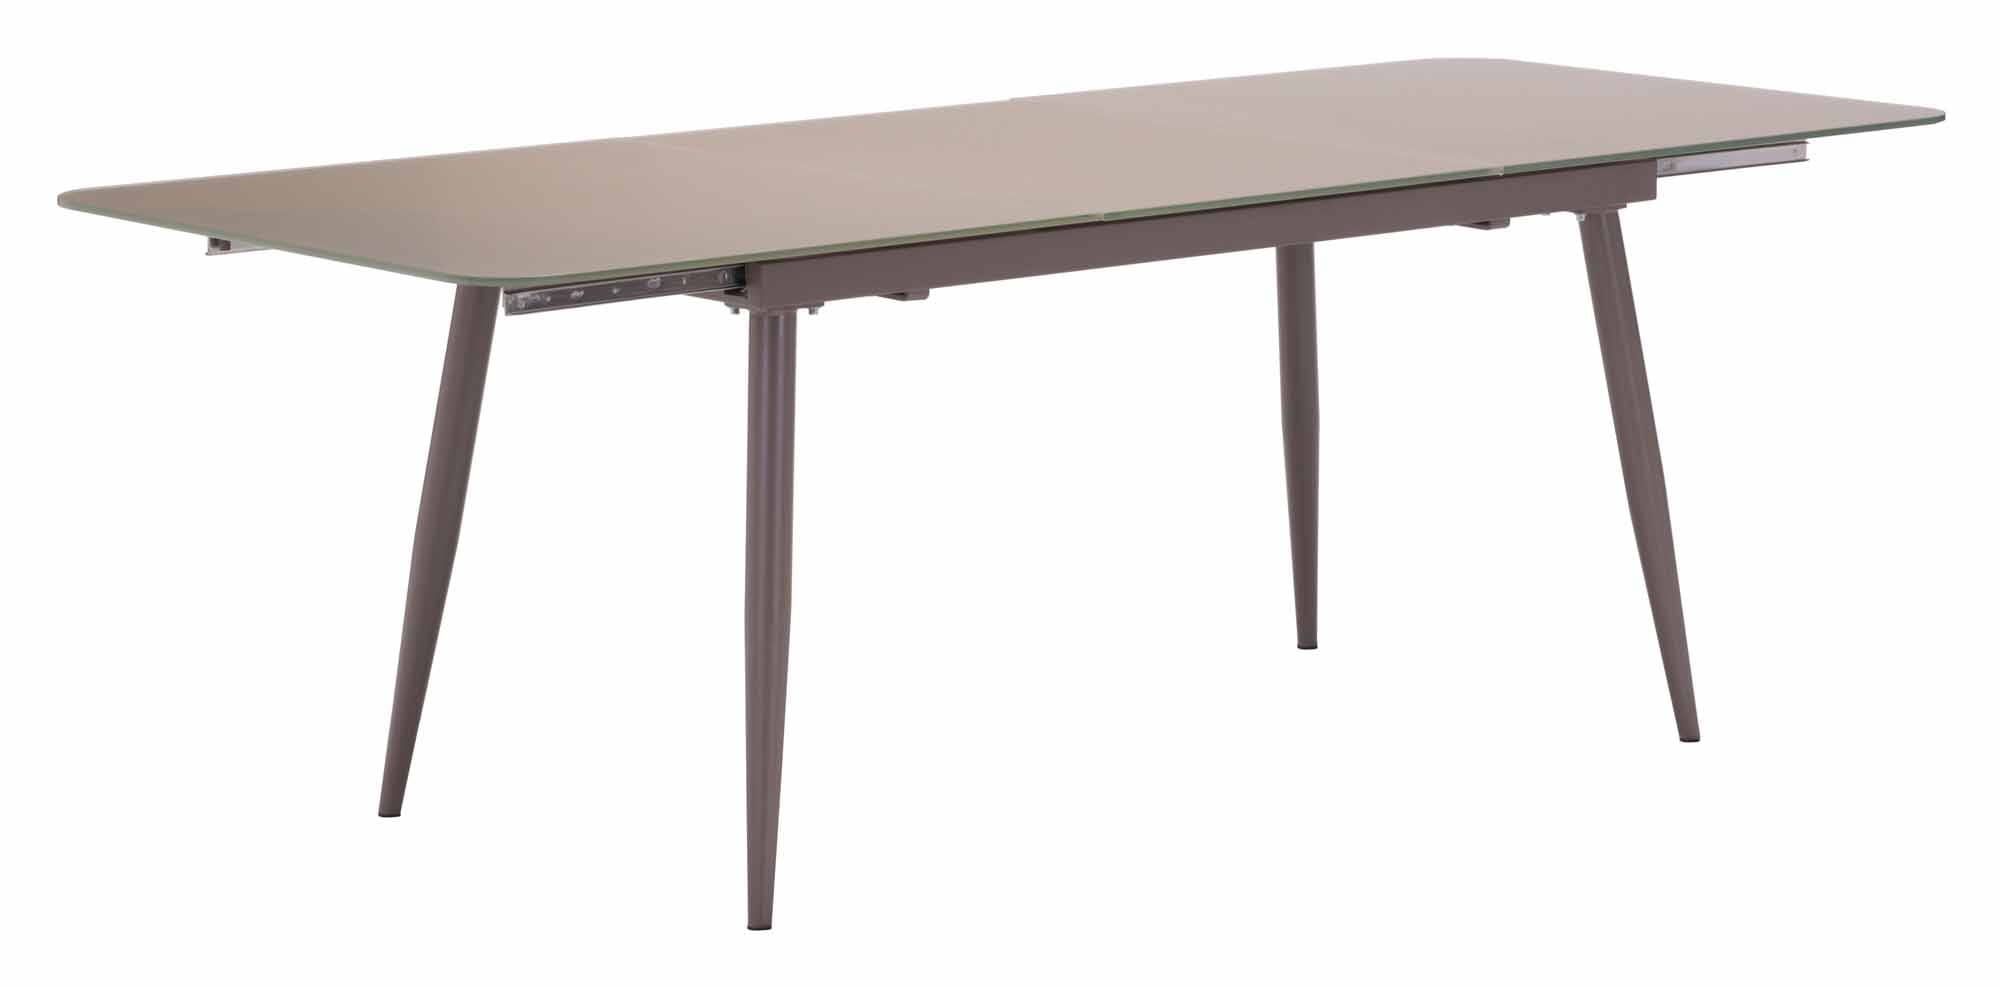 Extension Dining Tables Photos Table And Pillow WeirdmongerCom - Tuscan spring dining table